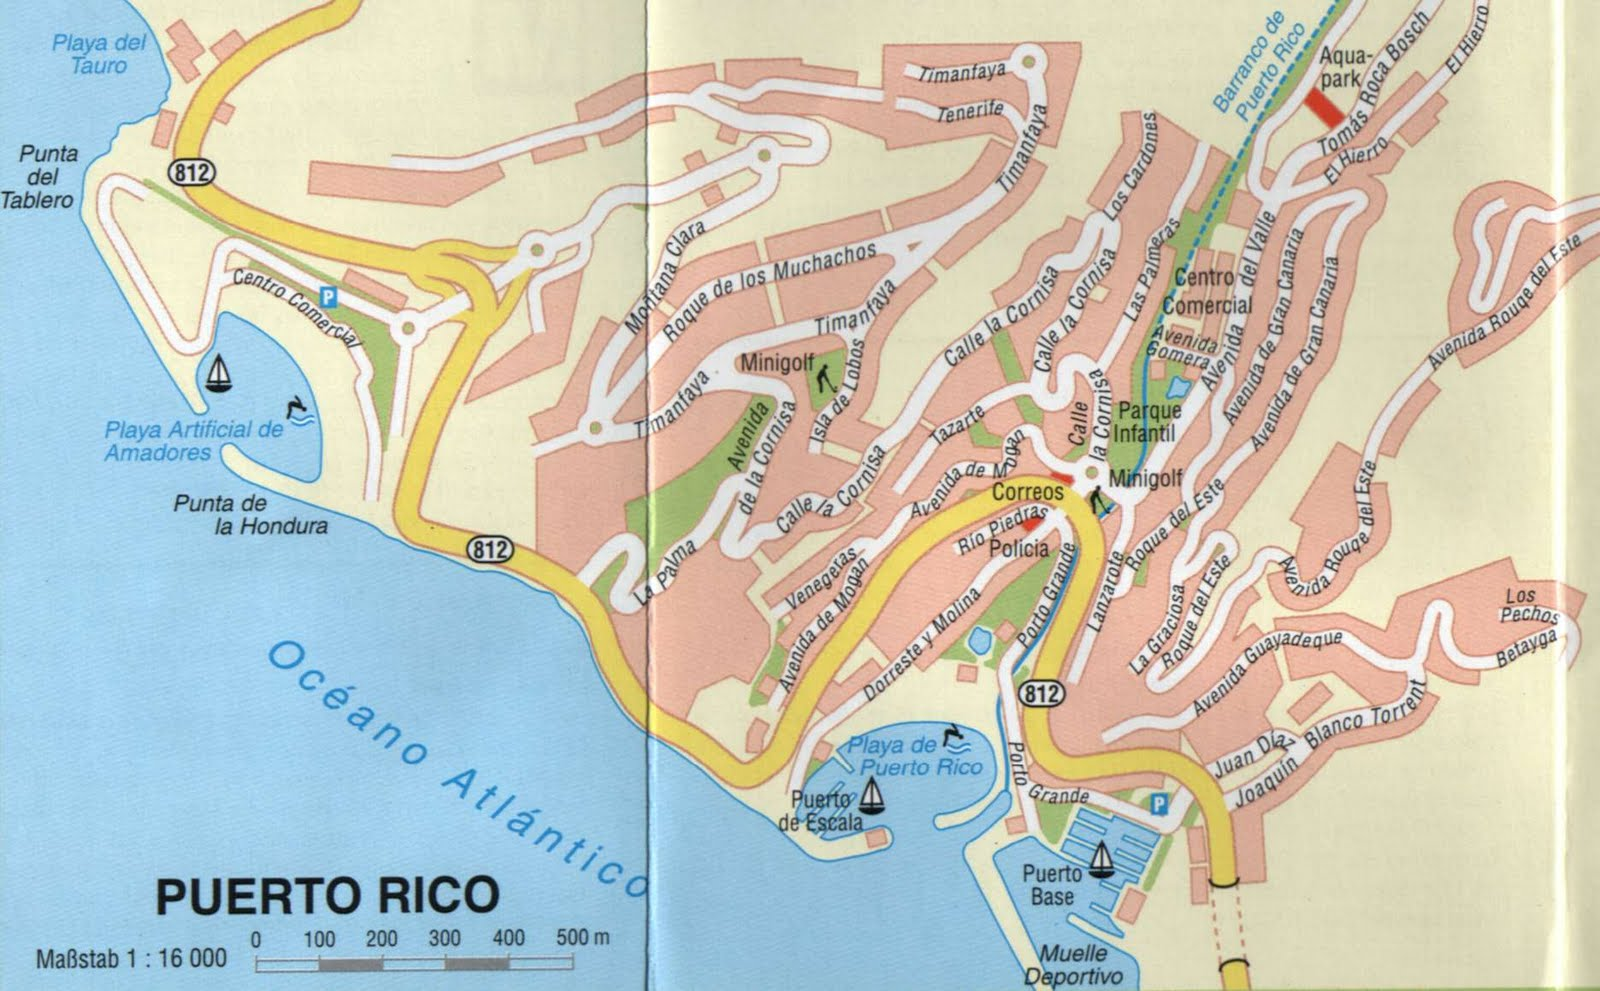 City maps Stadskartor och turistkartor Travel Portal – Puerto Rico Tourist Attractions Map